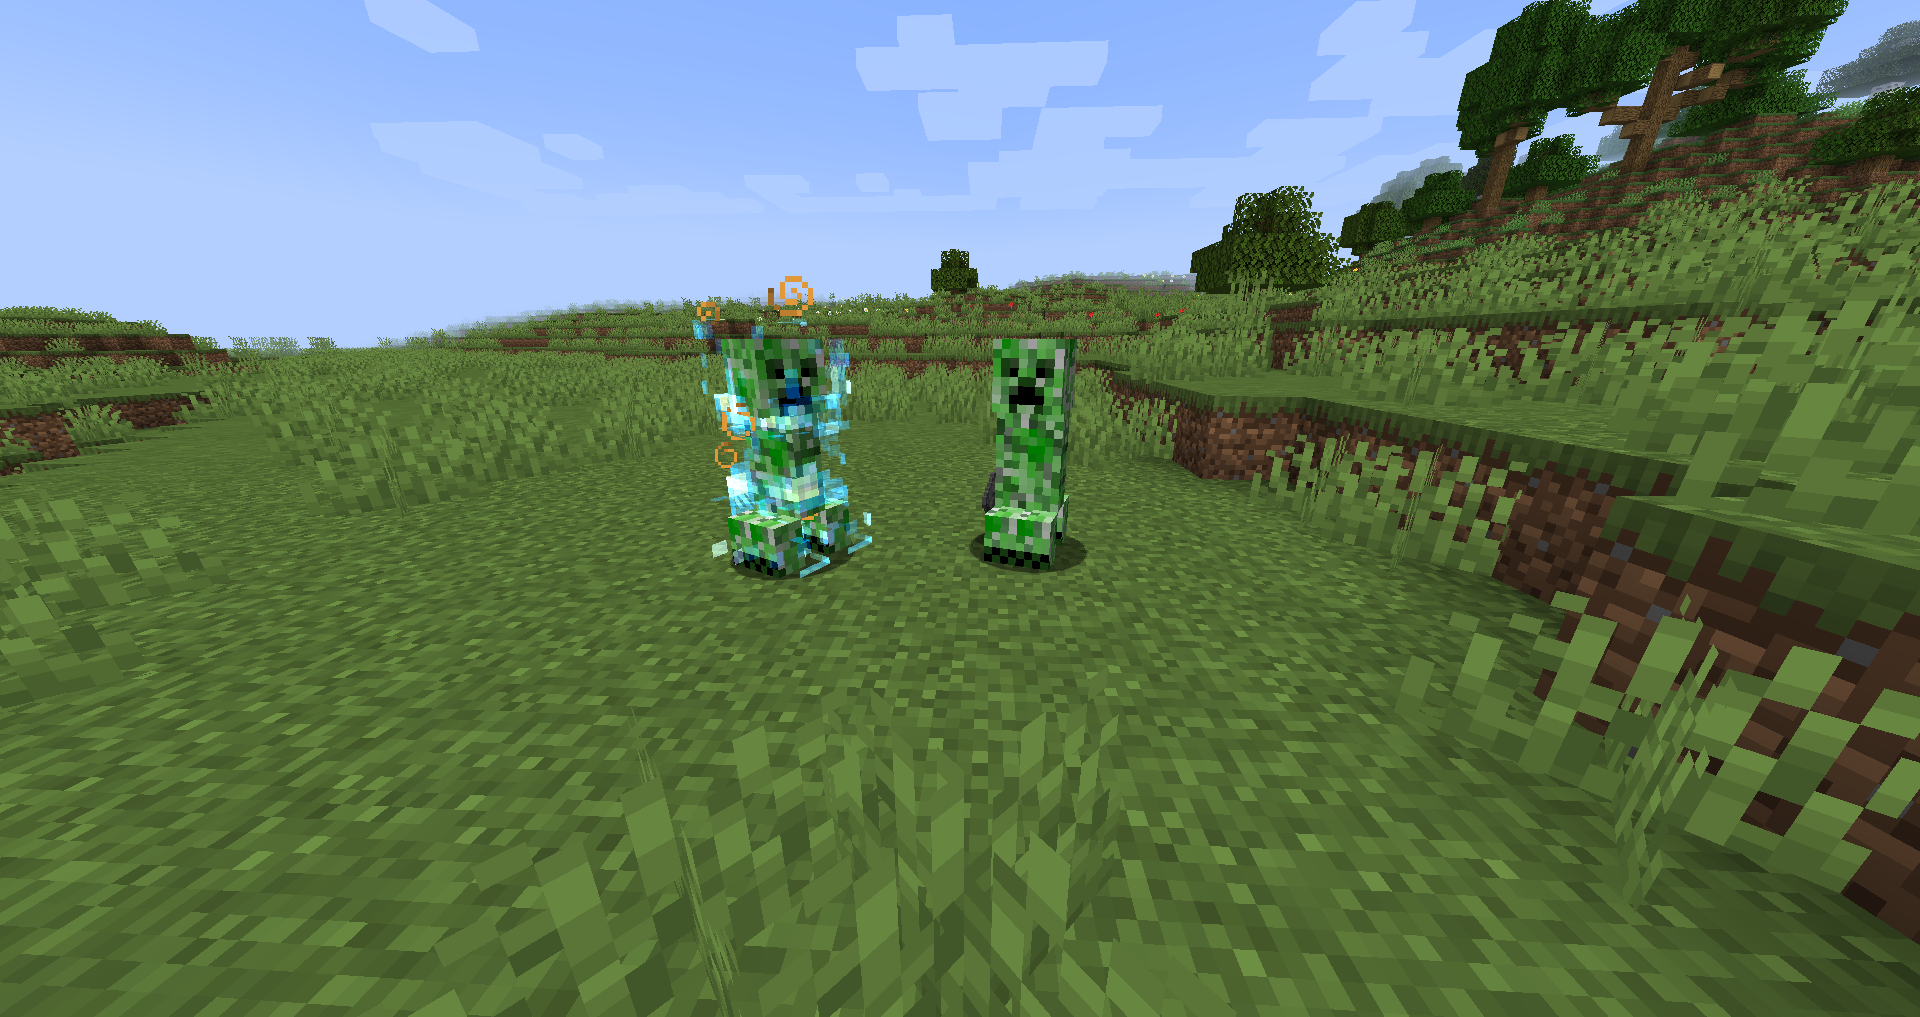 File:Charged creeper next to a normal creeper.png